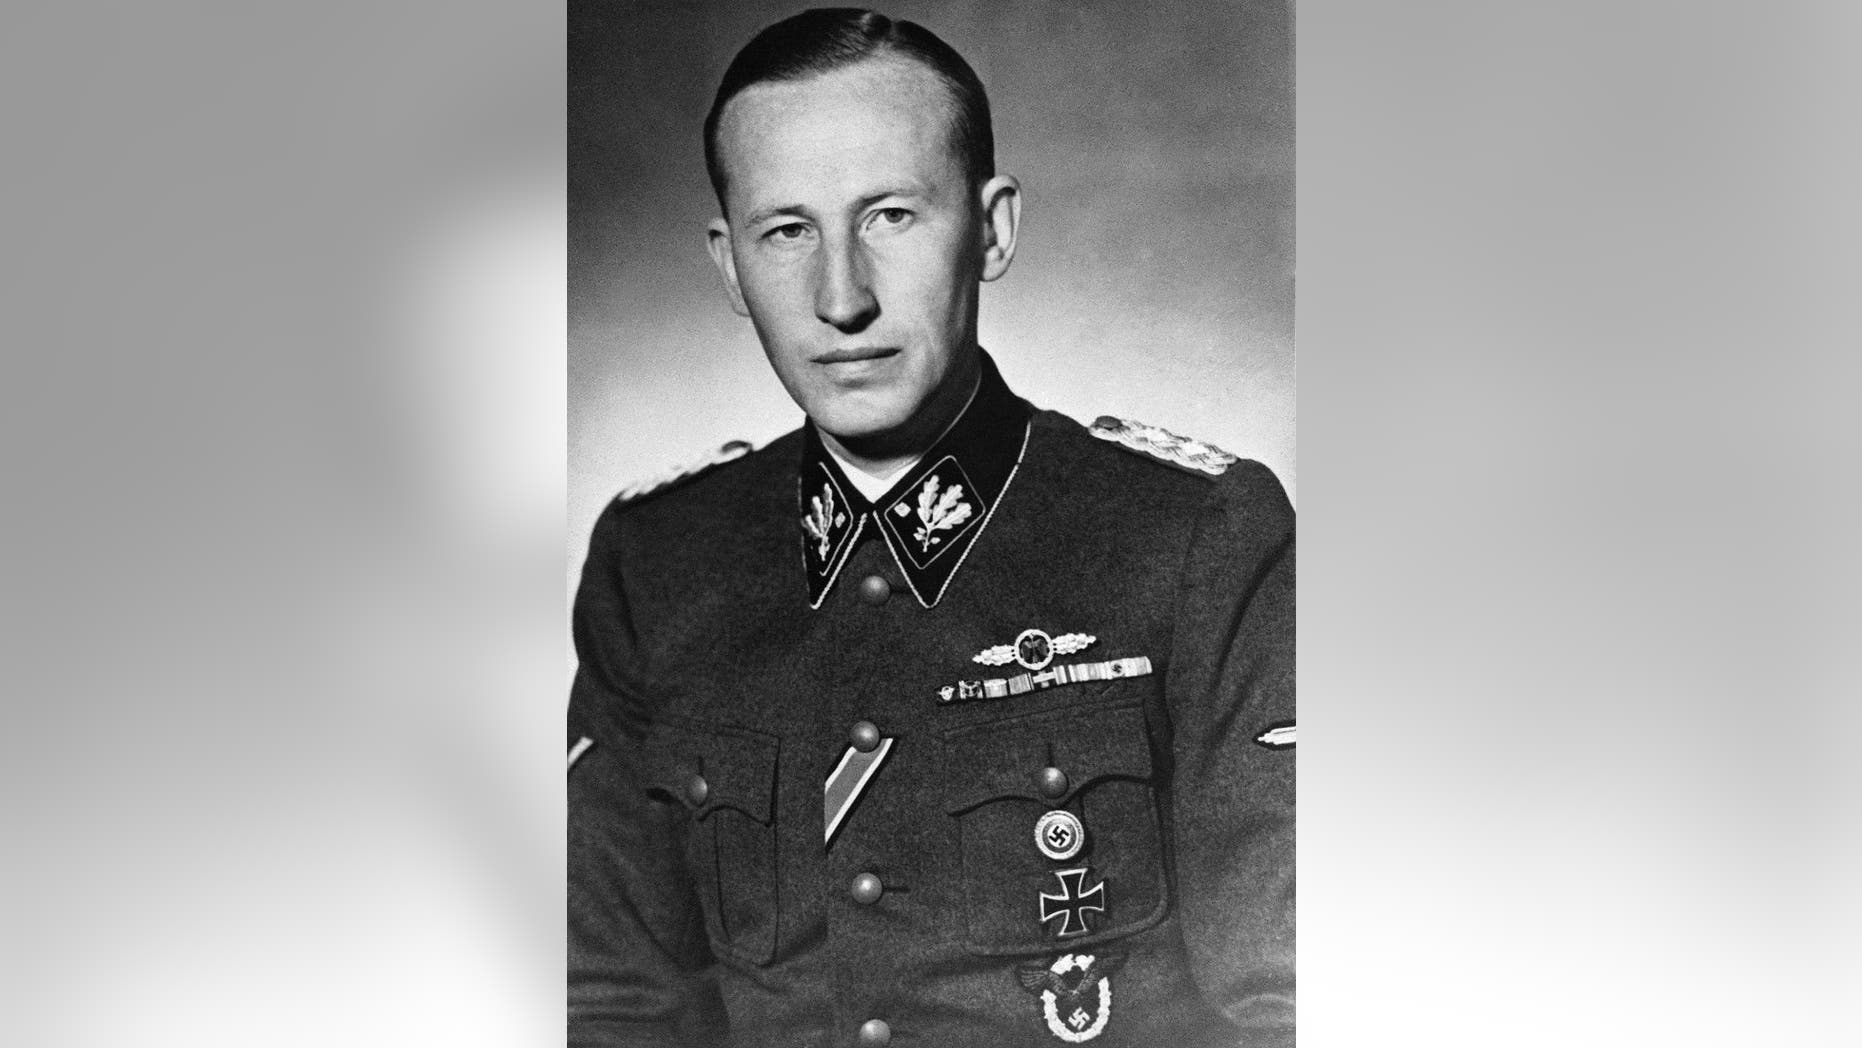 """FILE - The 1942 file photo shows Nazi leader Reinhard Heydrich in an unknown location sometime in 1942.  Lina Heydrich, the widow of assassinated Heydrich, one of the main architects of the Holocaust, was among the most prominent recipients of pensions for """"victims of war"""" who were injured in World War II.  (AP Photo)"""